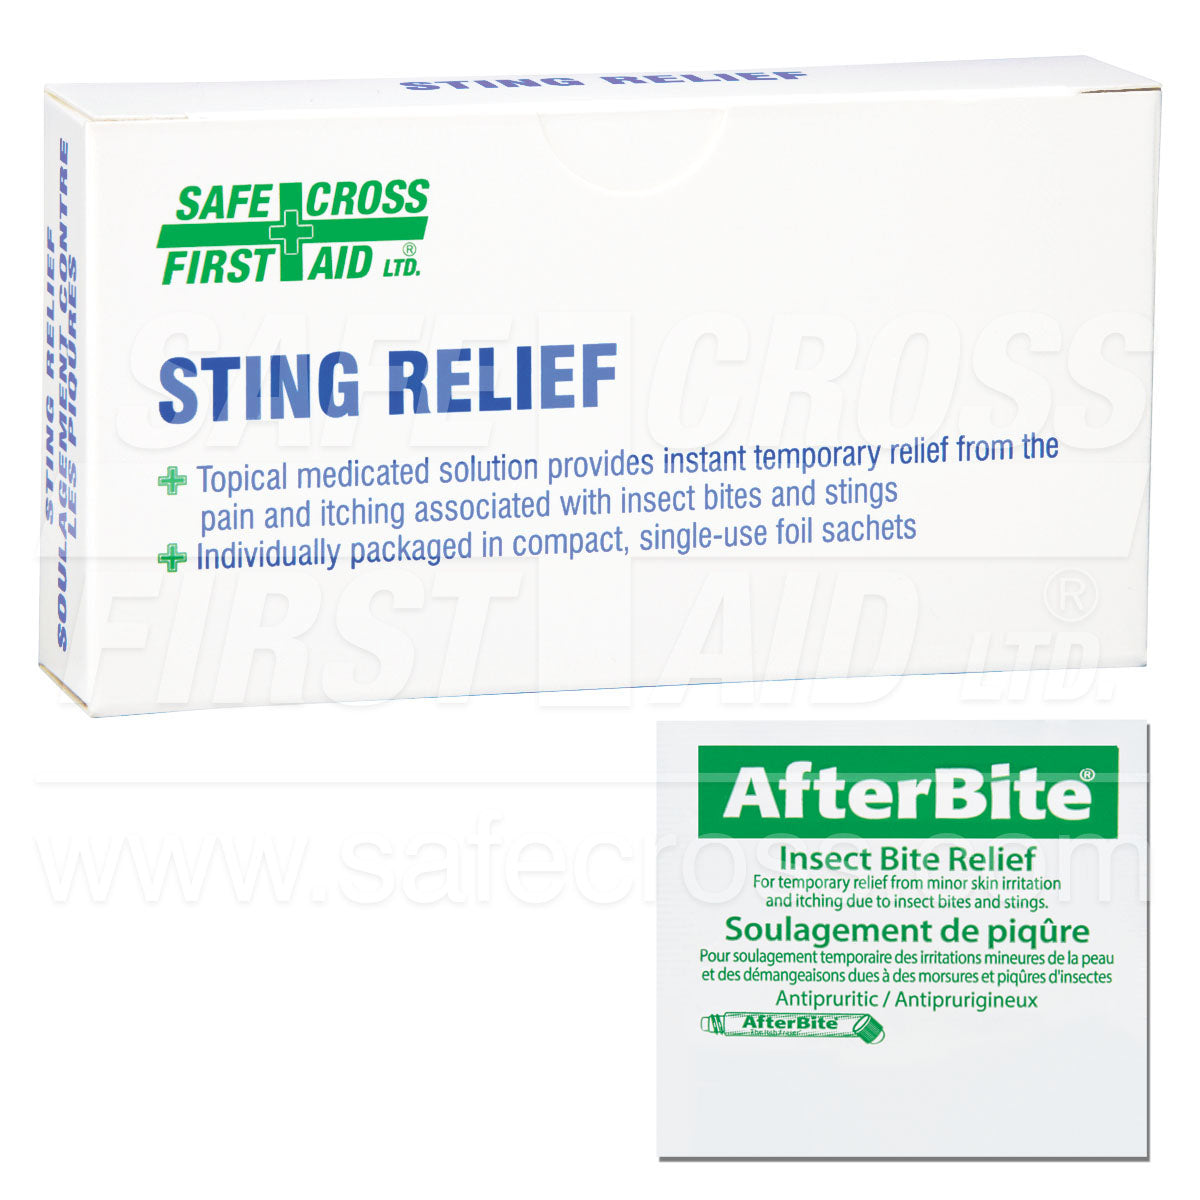 After Bite® Insect Bite Treatment